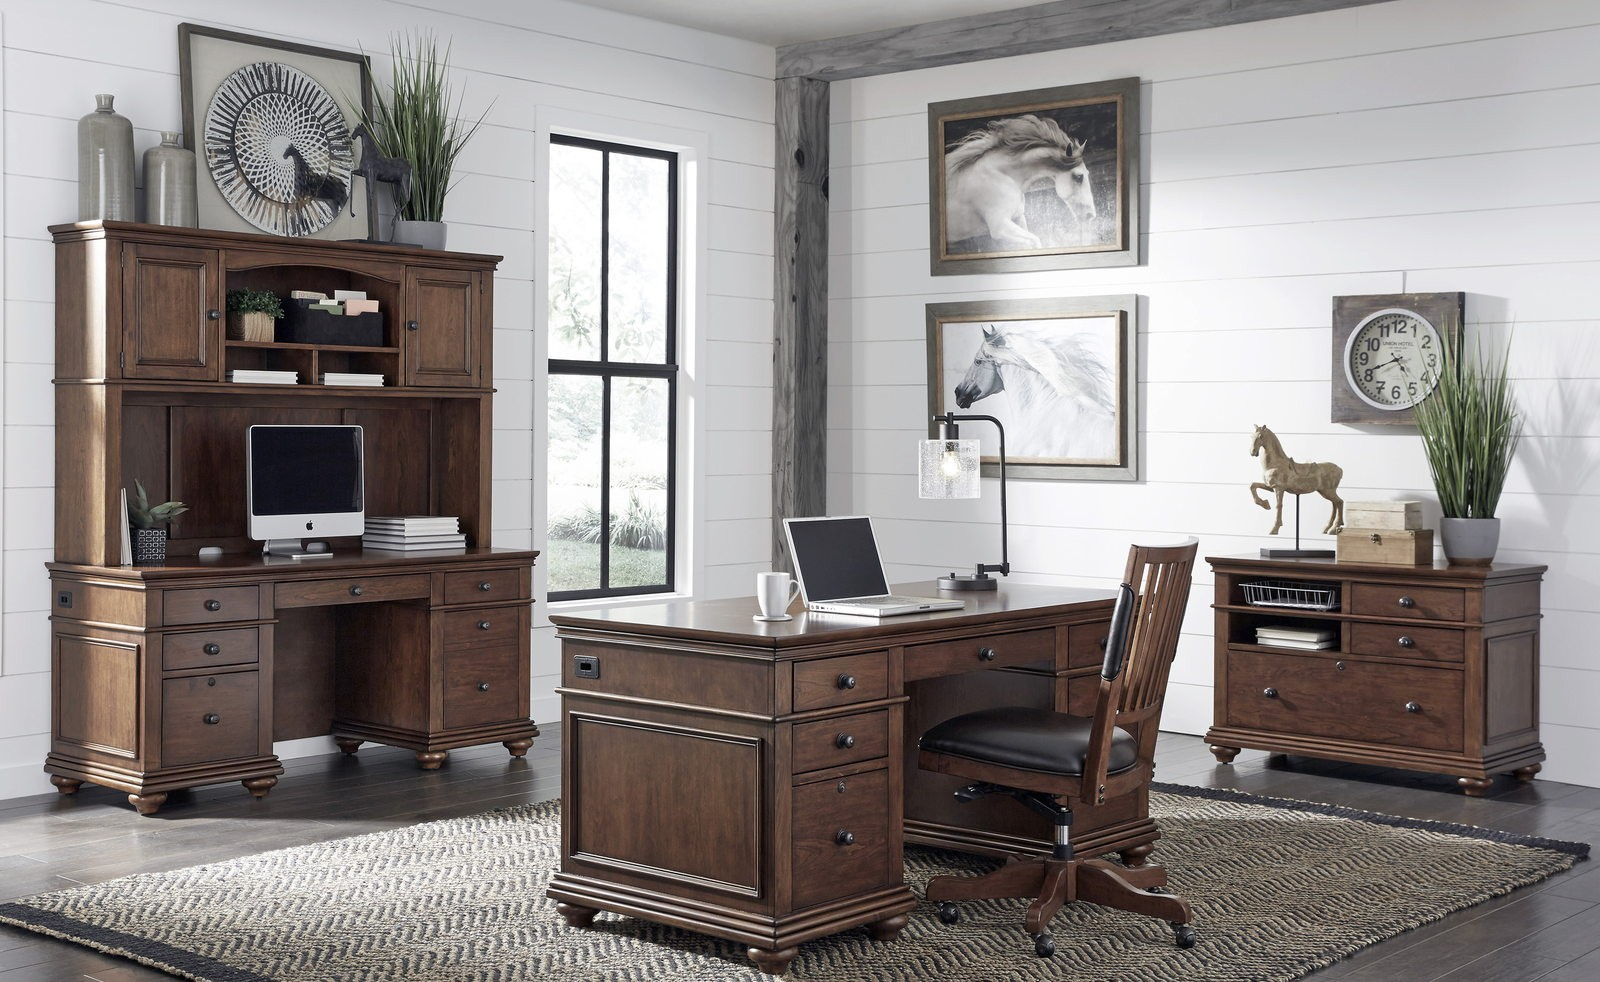 Aspenhome Oxford 66 Executive Desk In Whiskey Brown I07